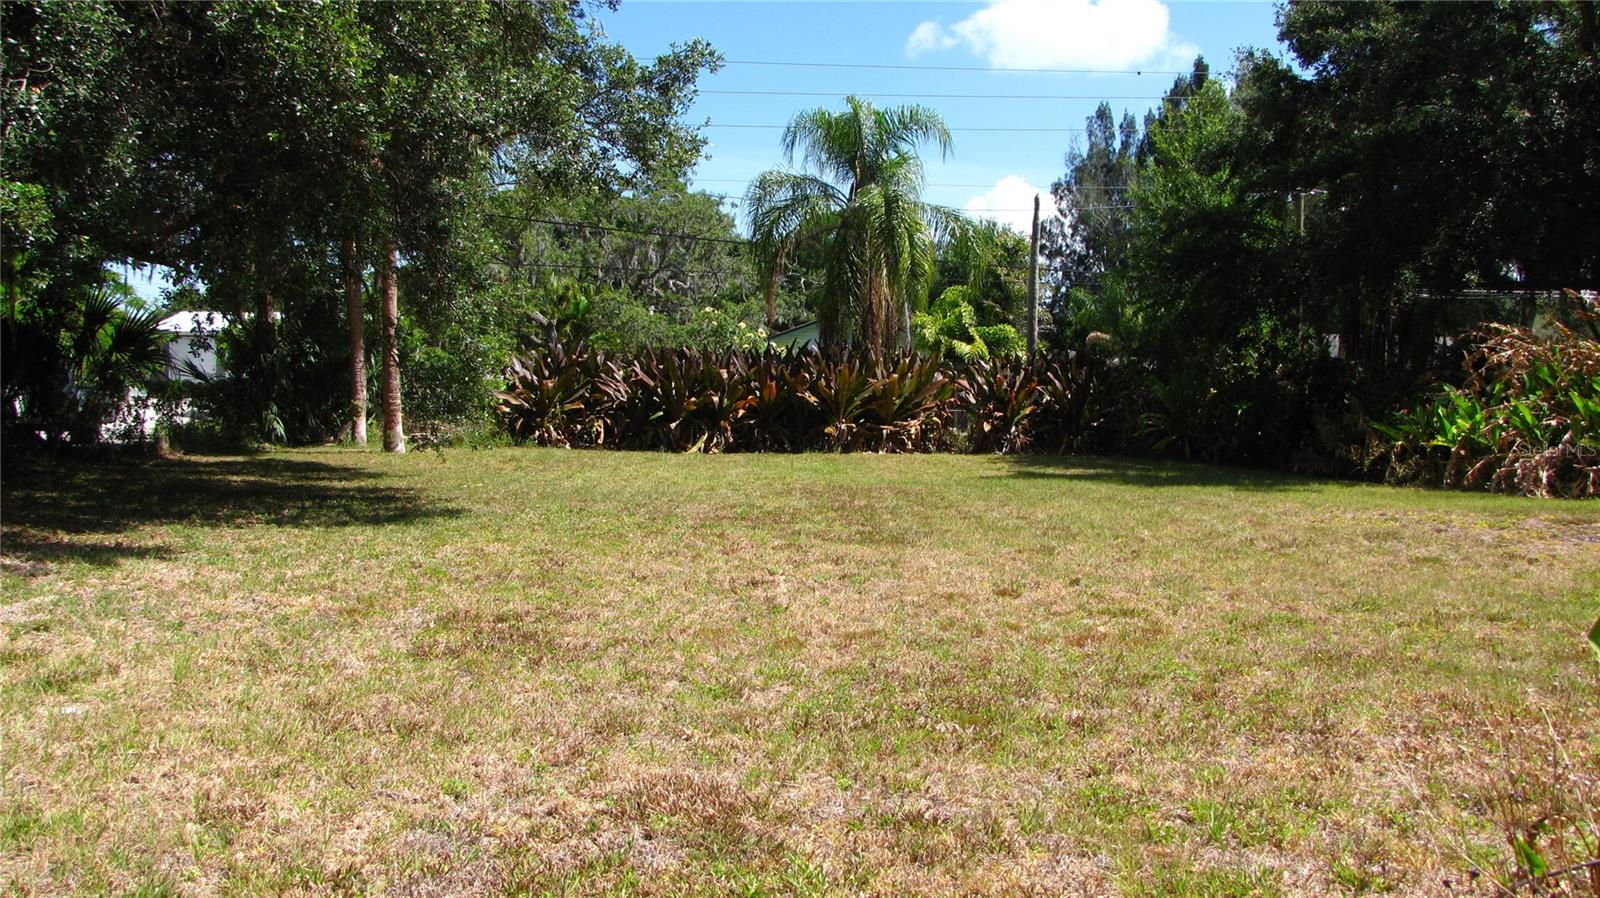 Primary photo of recently sold MLS# N6115685